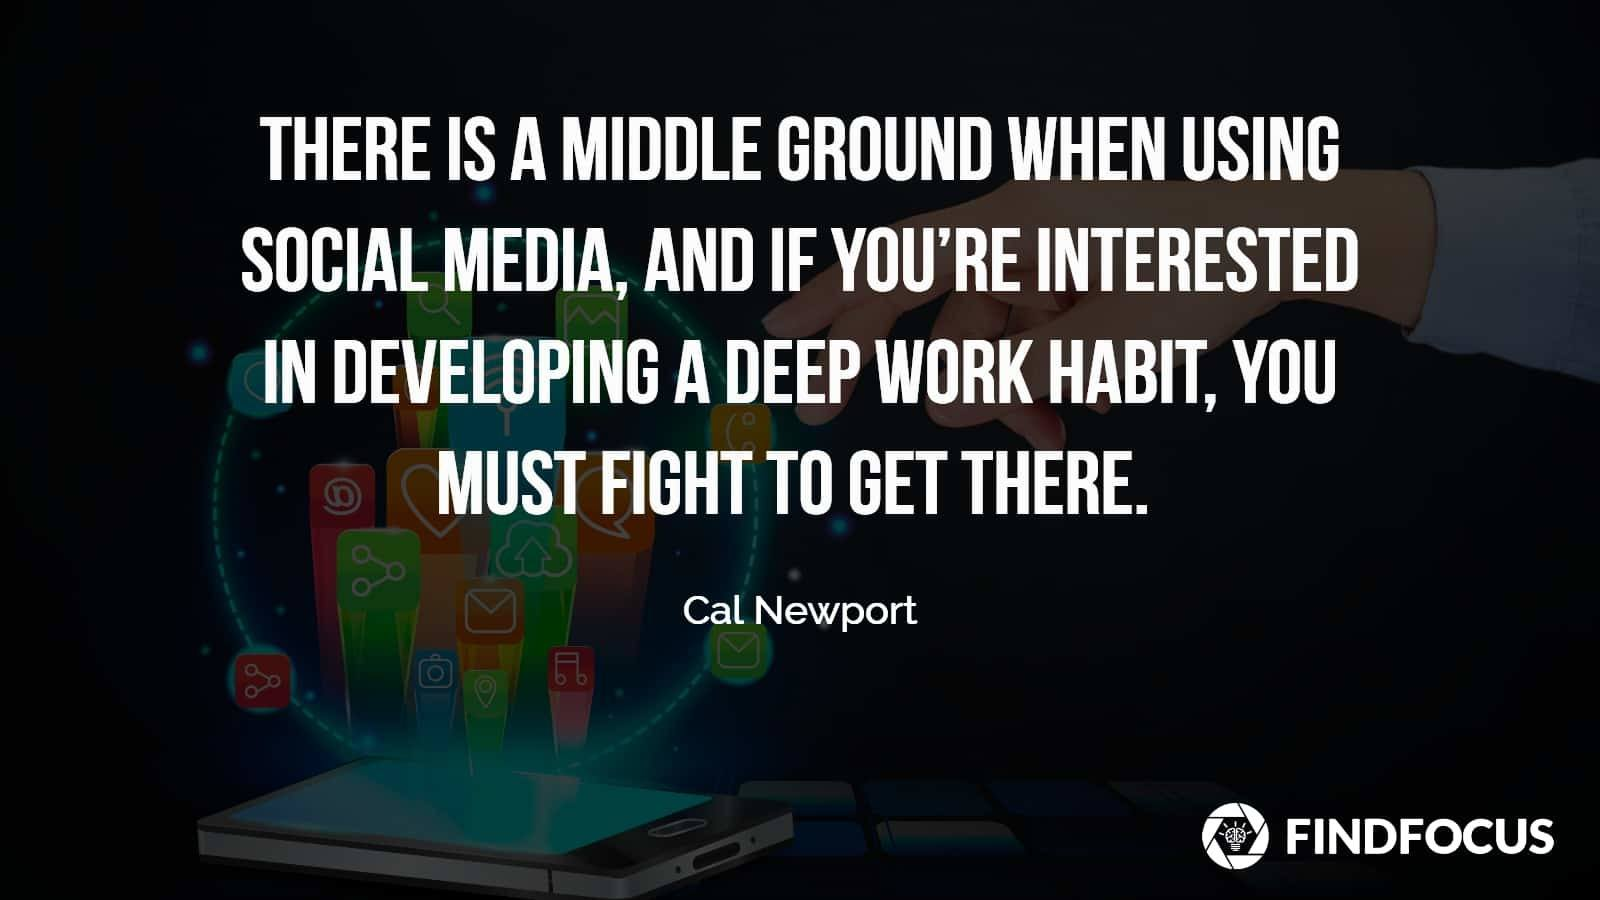 How to develop Deep Work Habits  when using Social Media